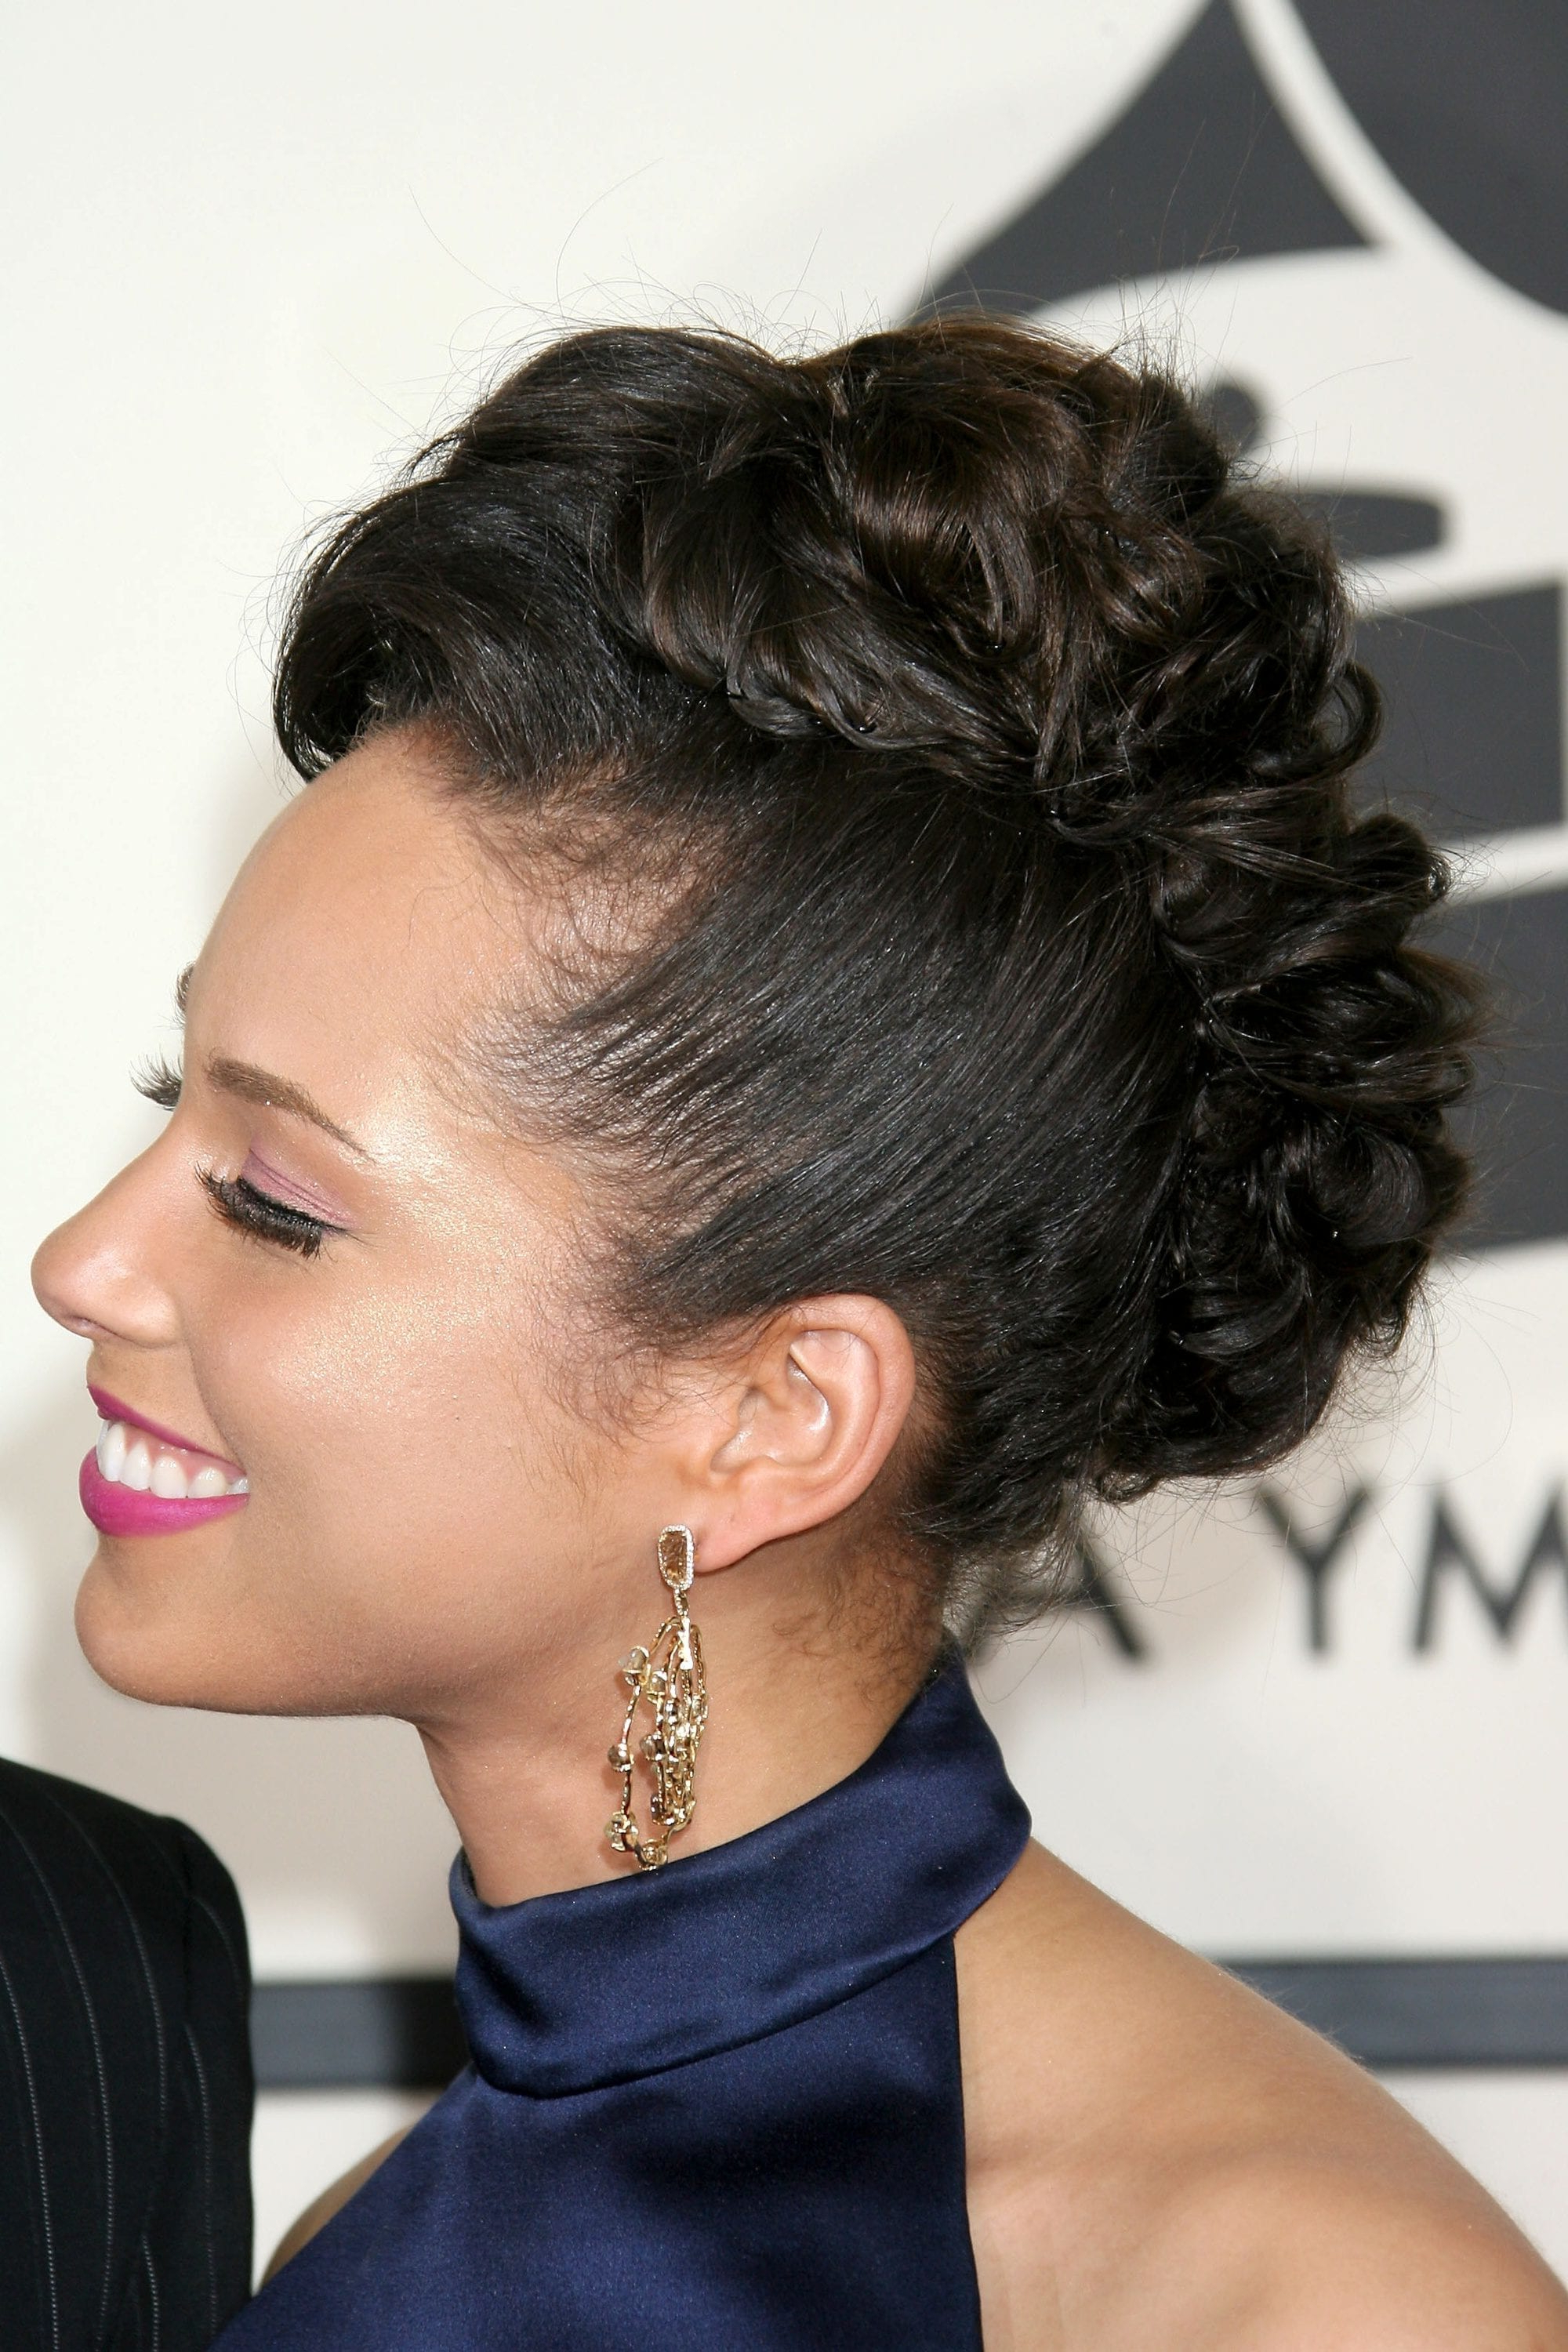 10 Mohawk Hairstyles For Black Women You Seriously Need To Try (View 3 of 20)